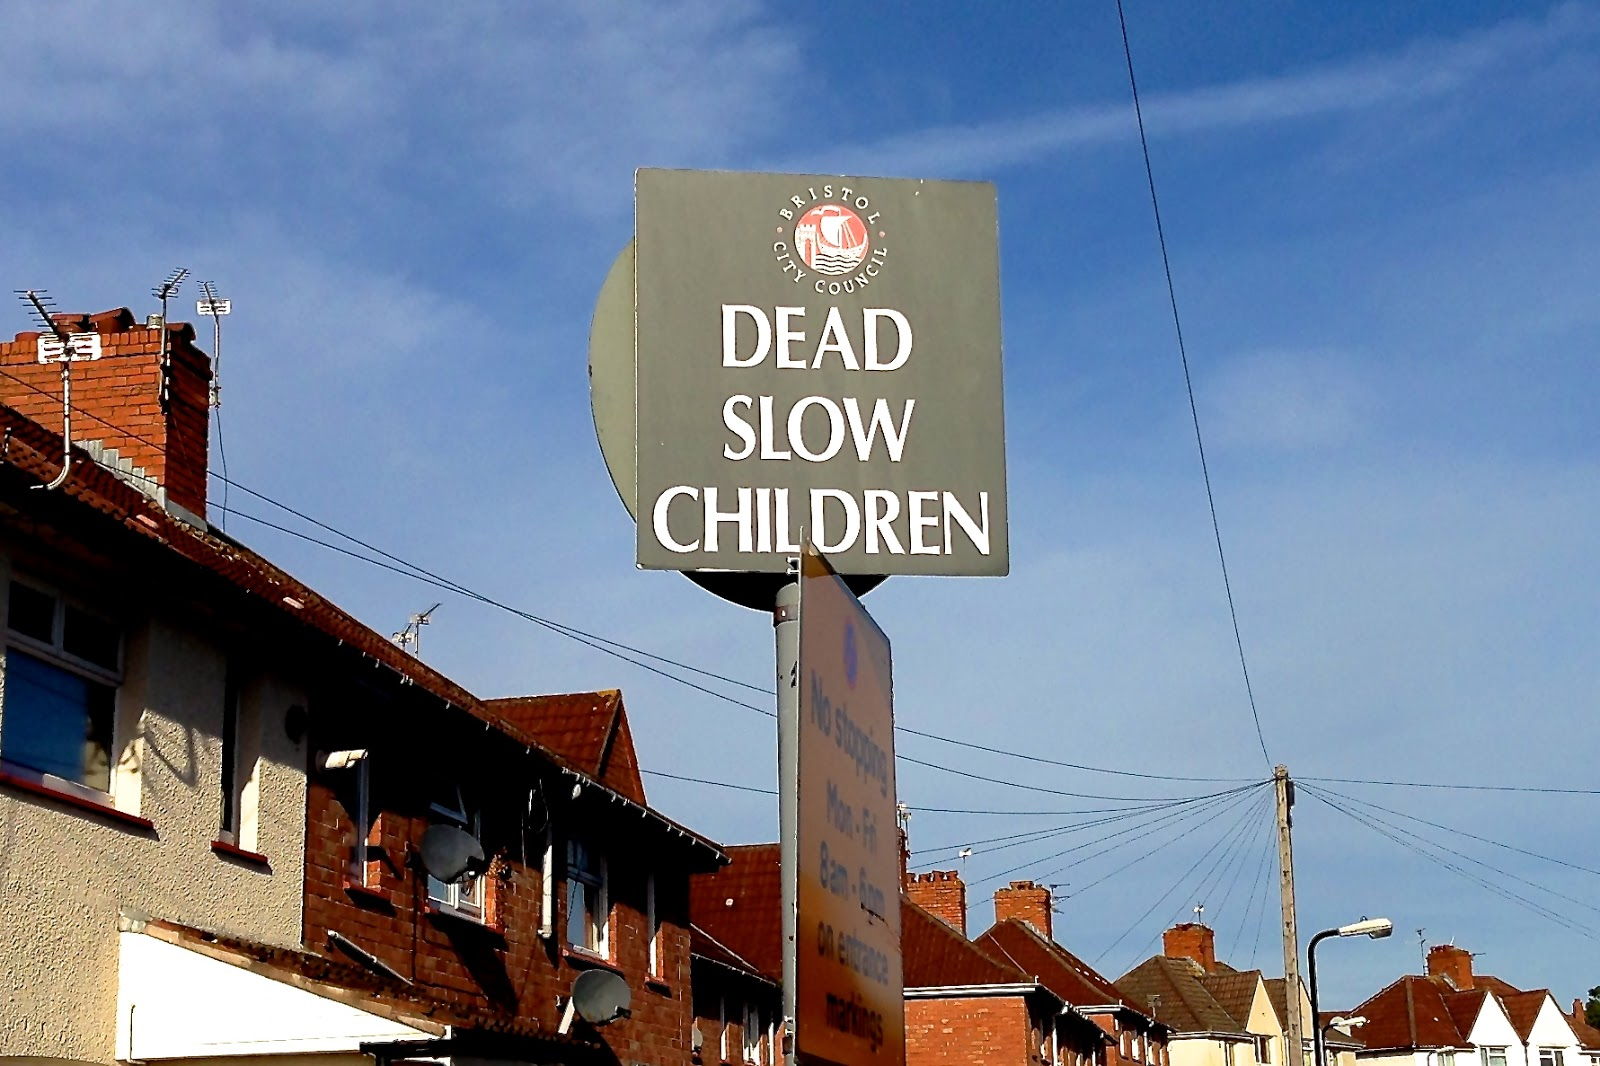 Dead Slow Children road sign